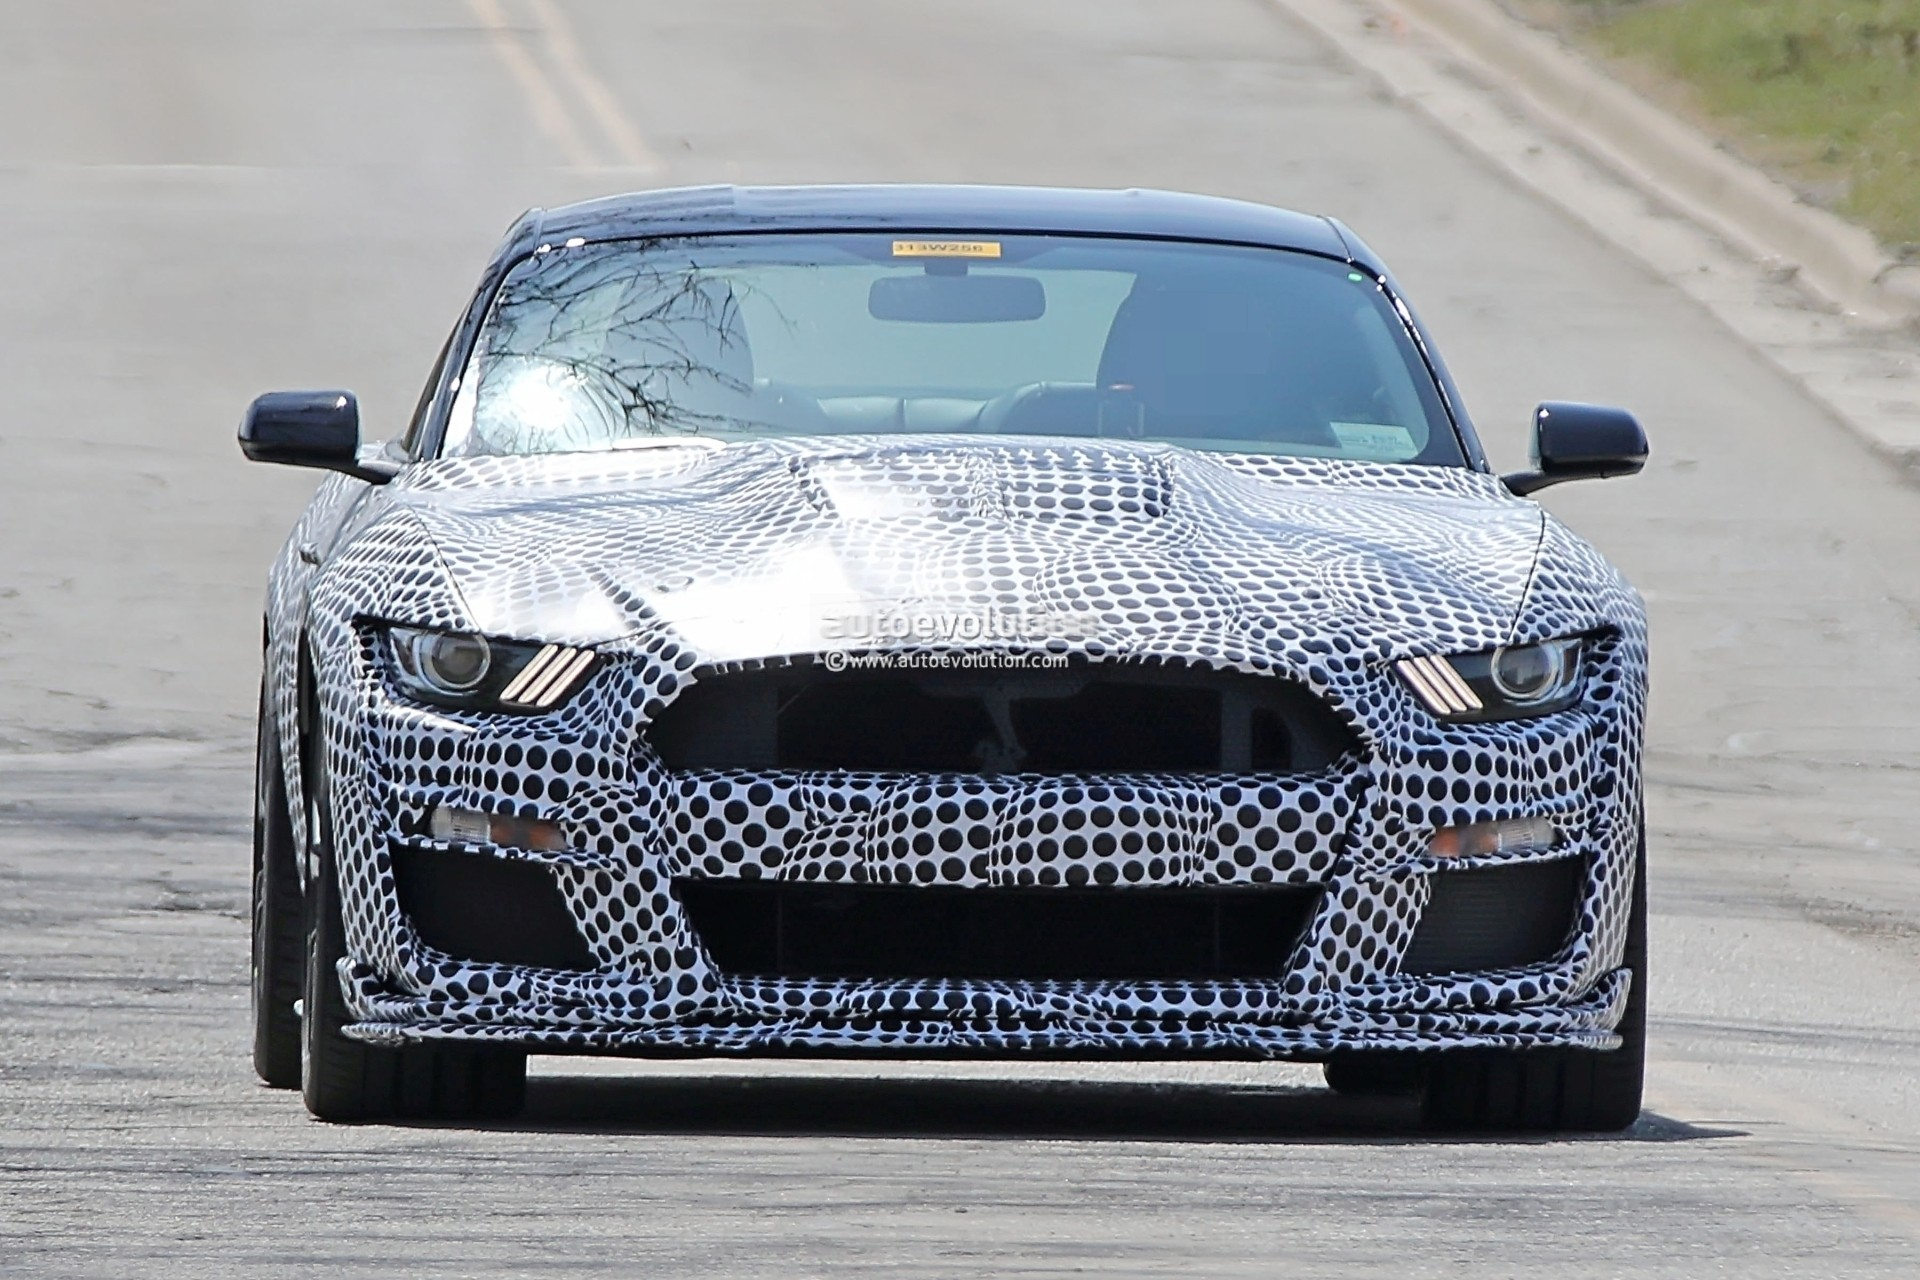 2020 Ford Mustang Shelby GT500 Spied Testing Dual-Clutch Transmission? - autoevolution